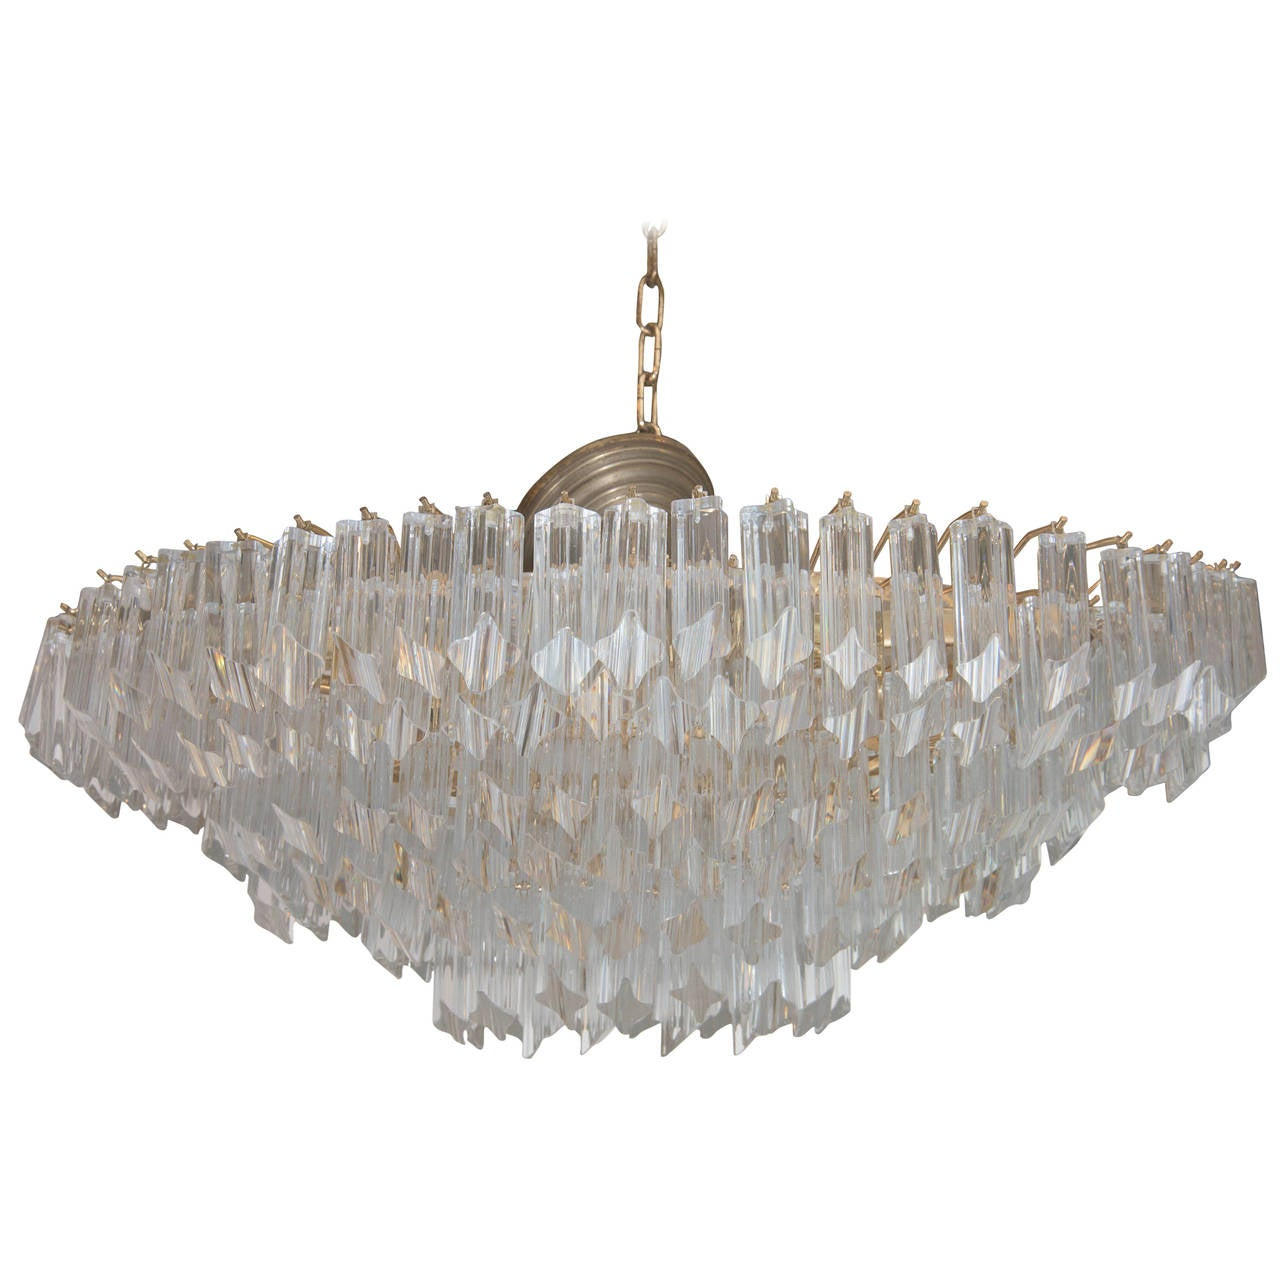 Oblong Chandelier: Midcentury Multi-Tiered Crystal Glass Prism Oval